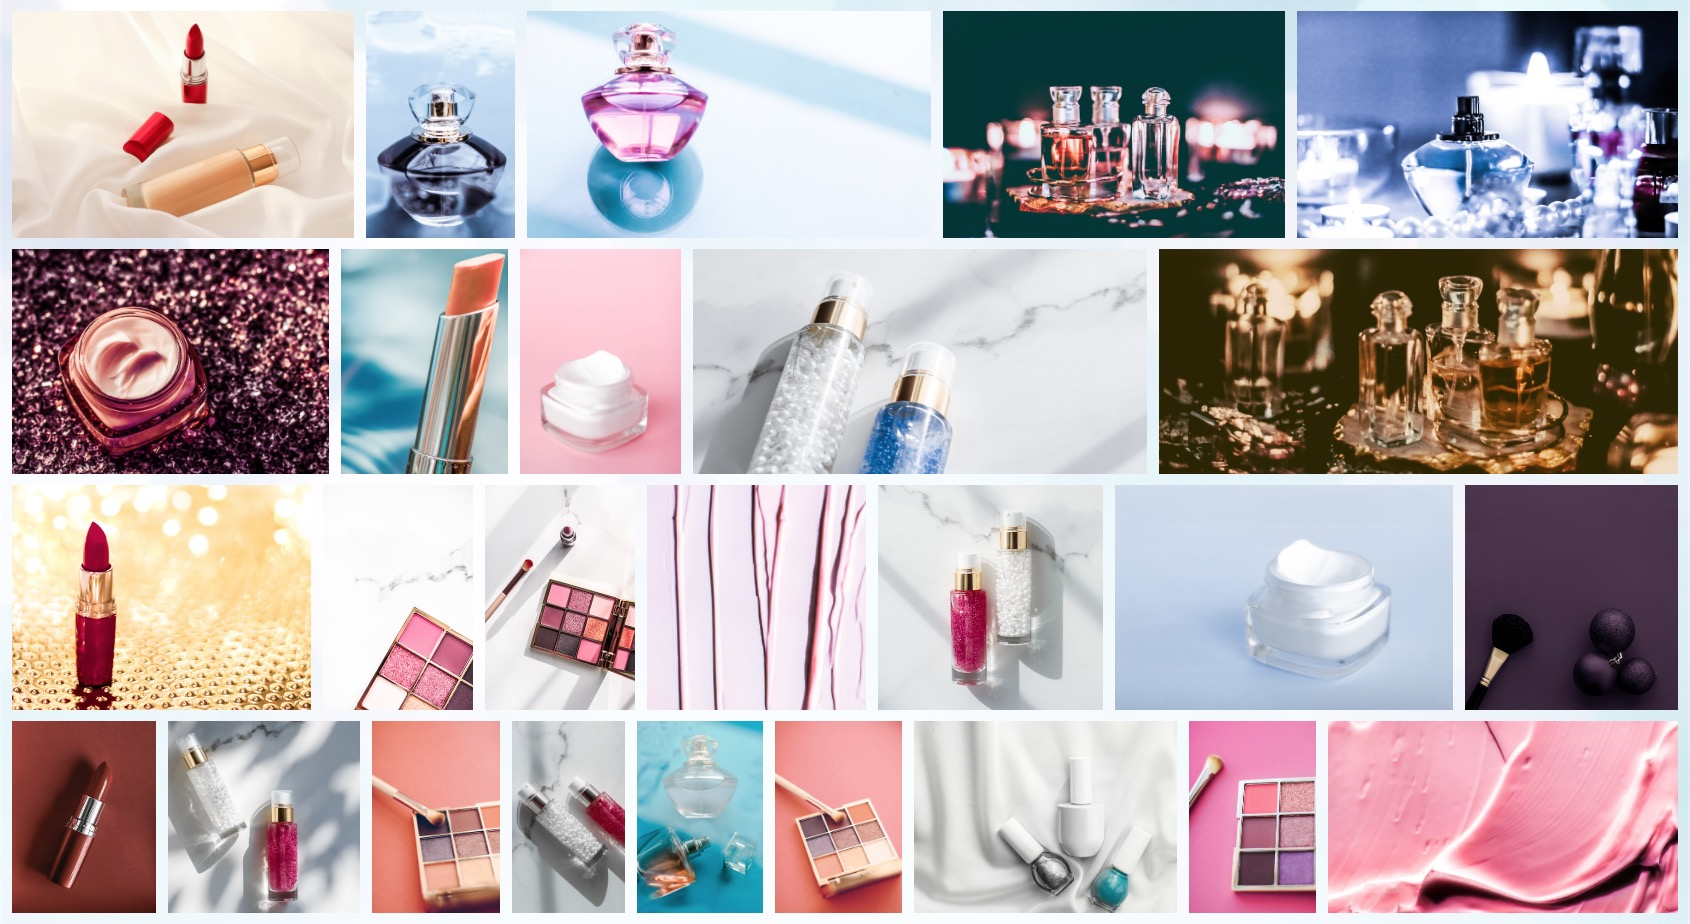 50 Images | Beauty & Make-Up Stock Photo Bundle #1 example image 2